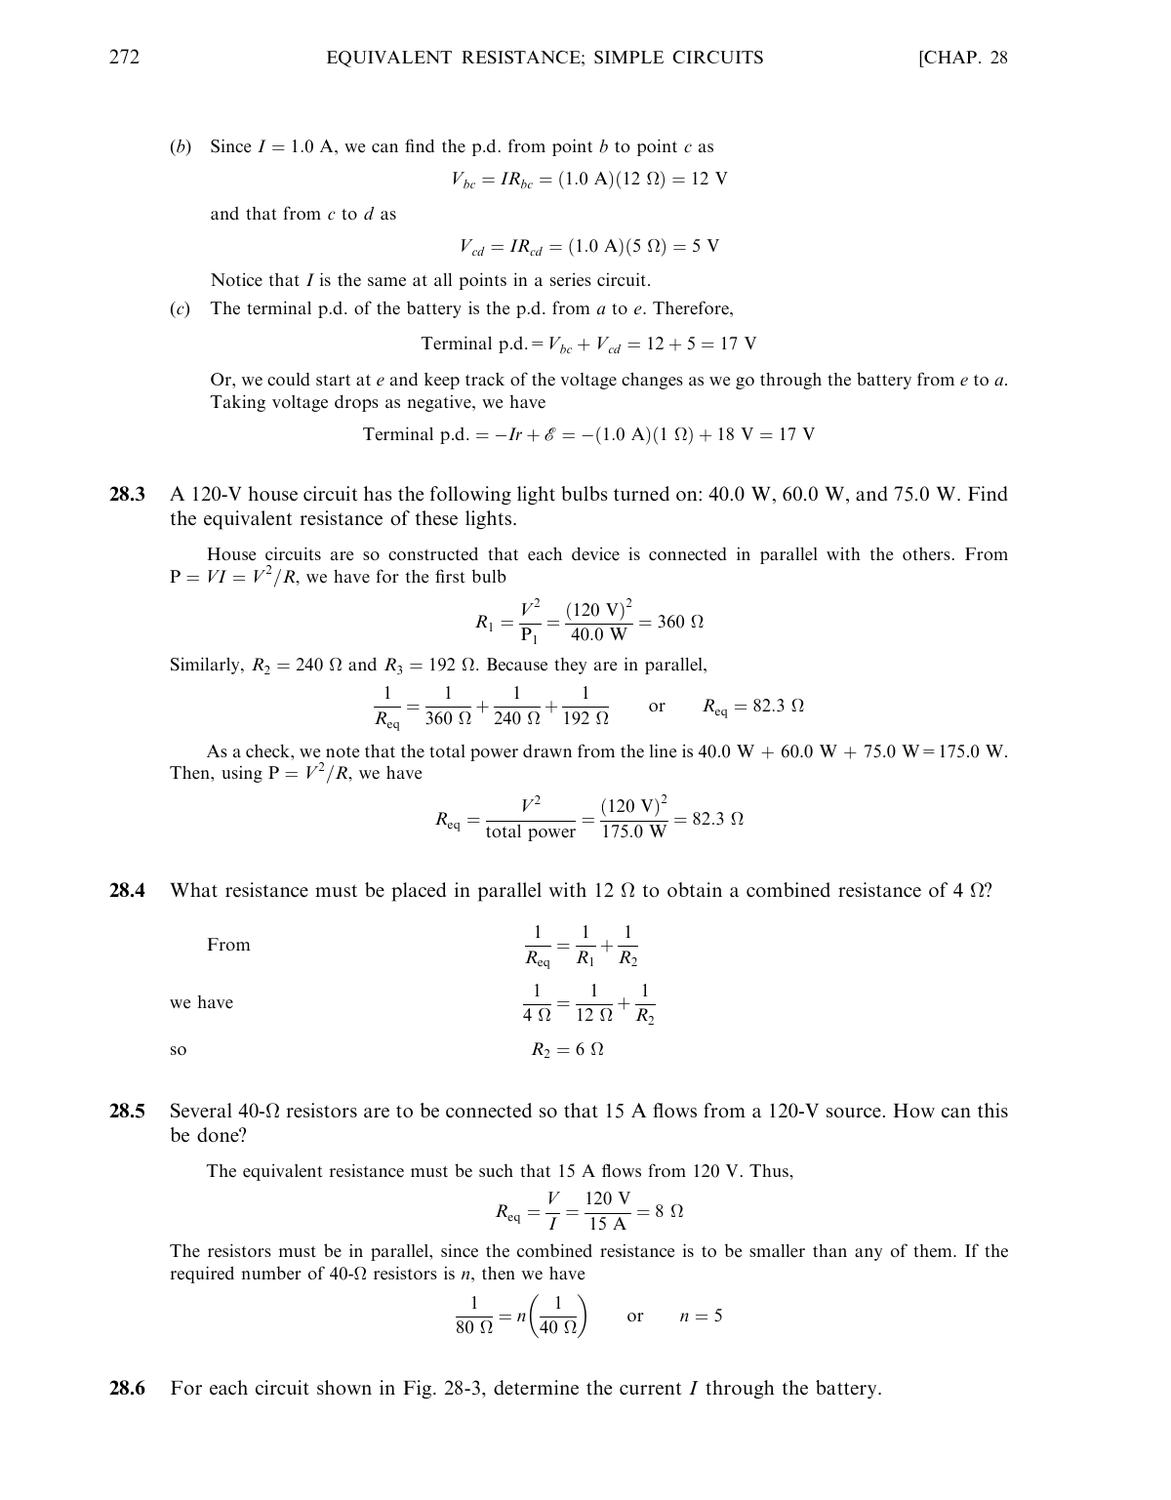 Schaums Outline Of College Physics 9th Ed Bueche Hecht 0070089418 Find Equivalent Resistance In This Circuit 1 By Karen Candia Issuu